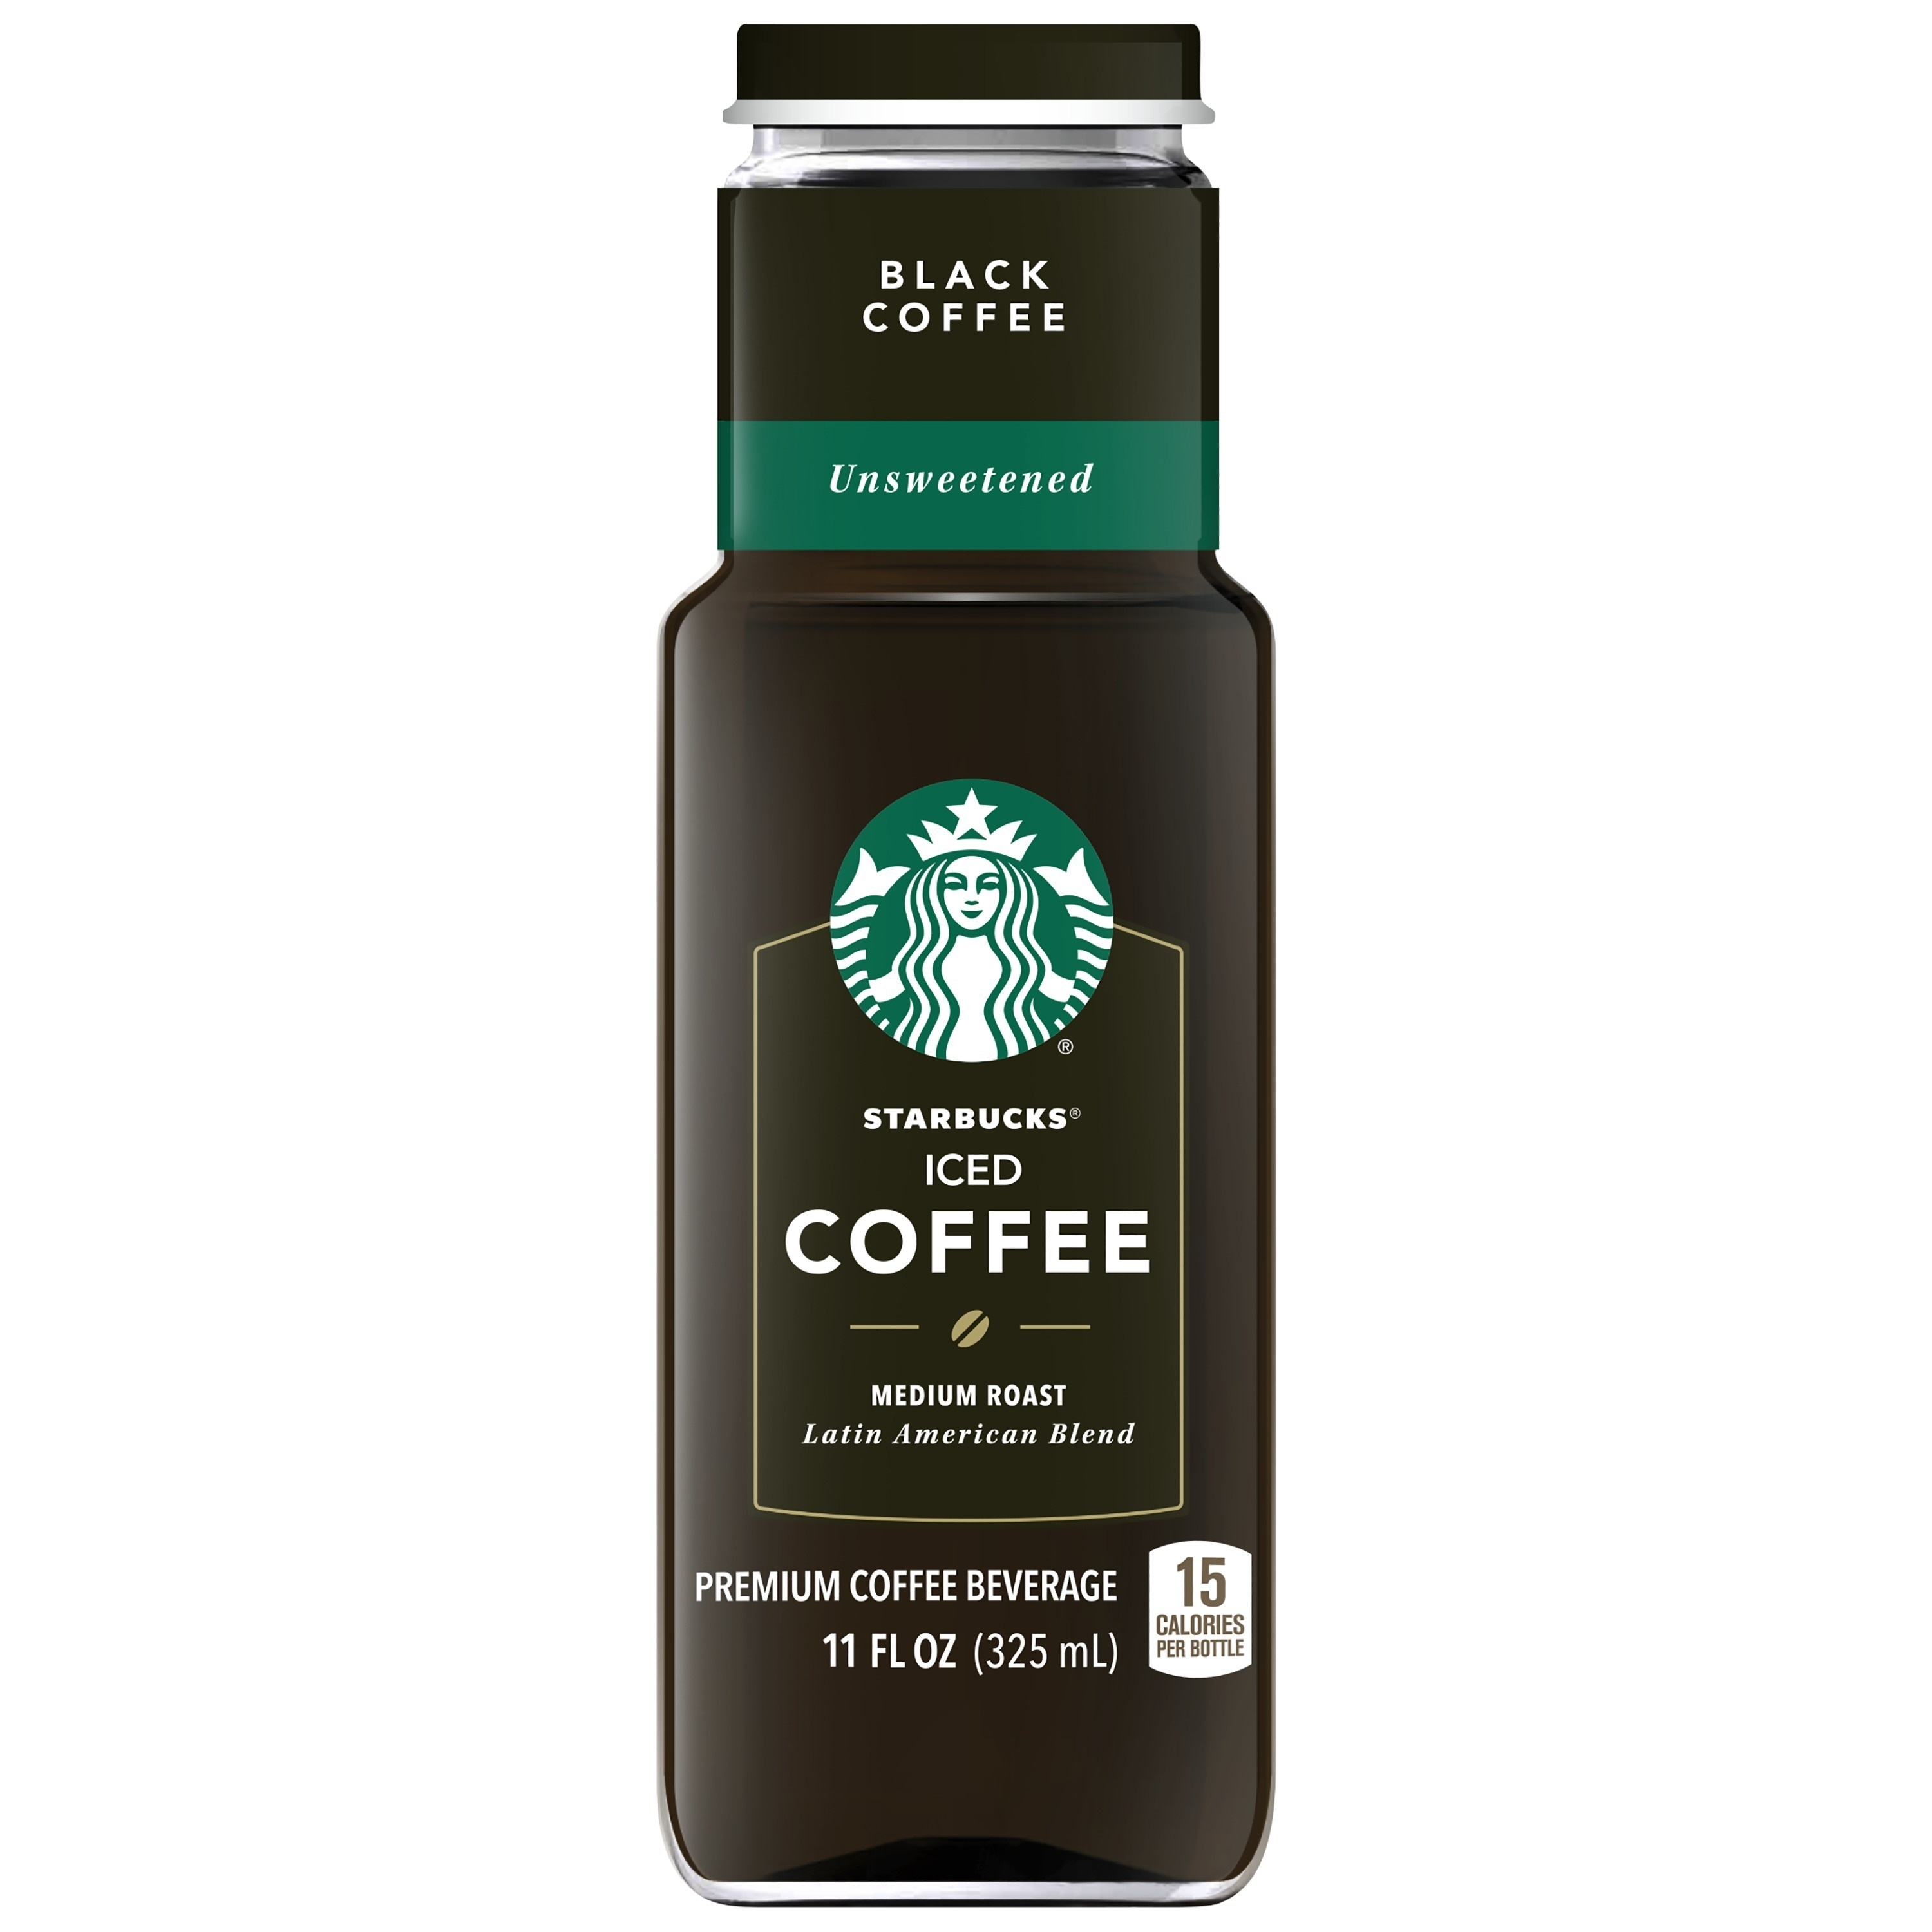 Starbucks Premium Iced Coffee Beverage, Unsweetened Black, 11 Fl Oz, 8 Ct